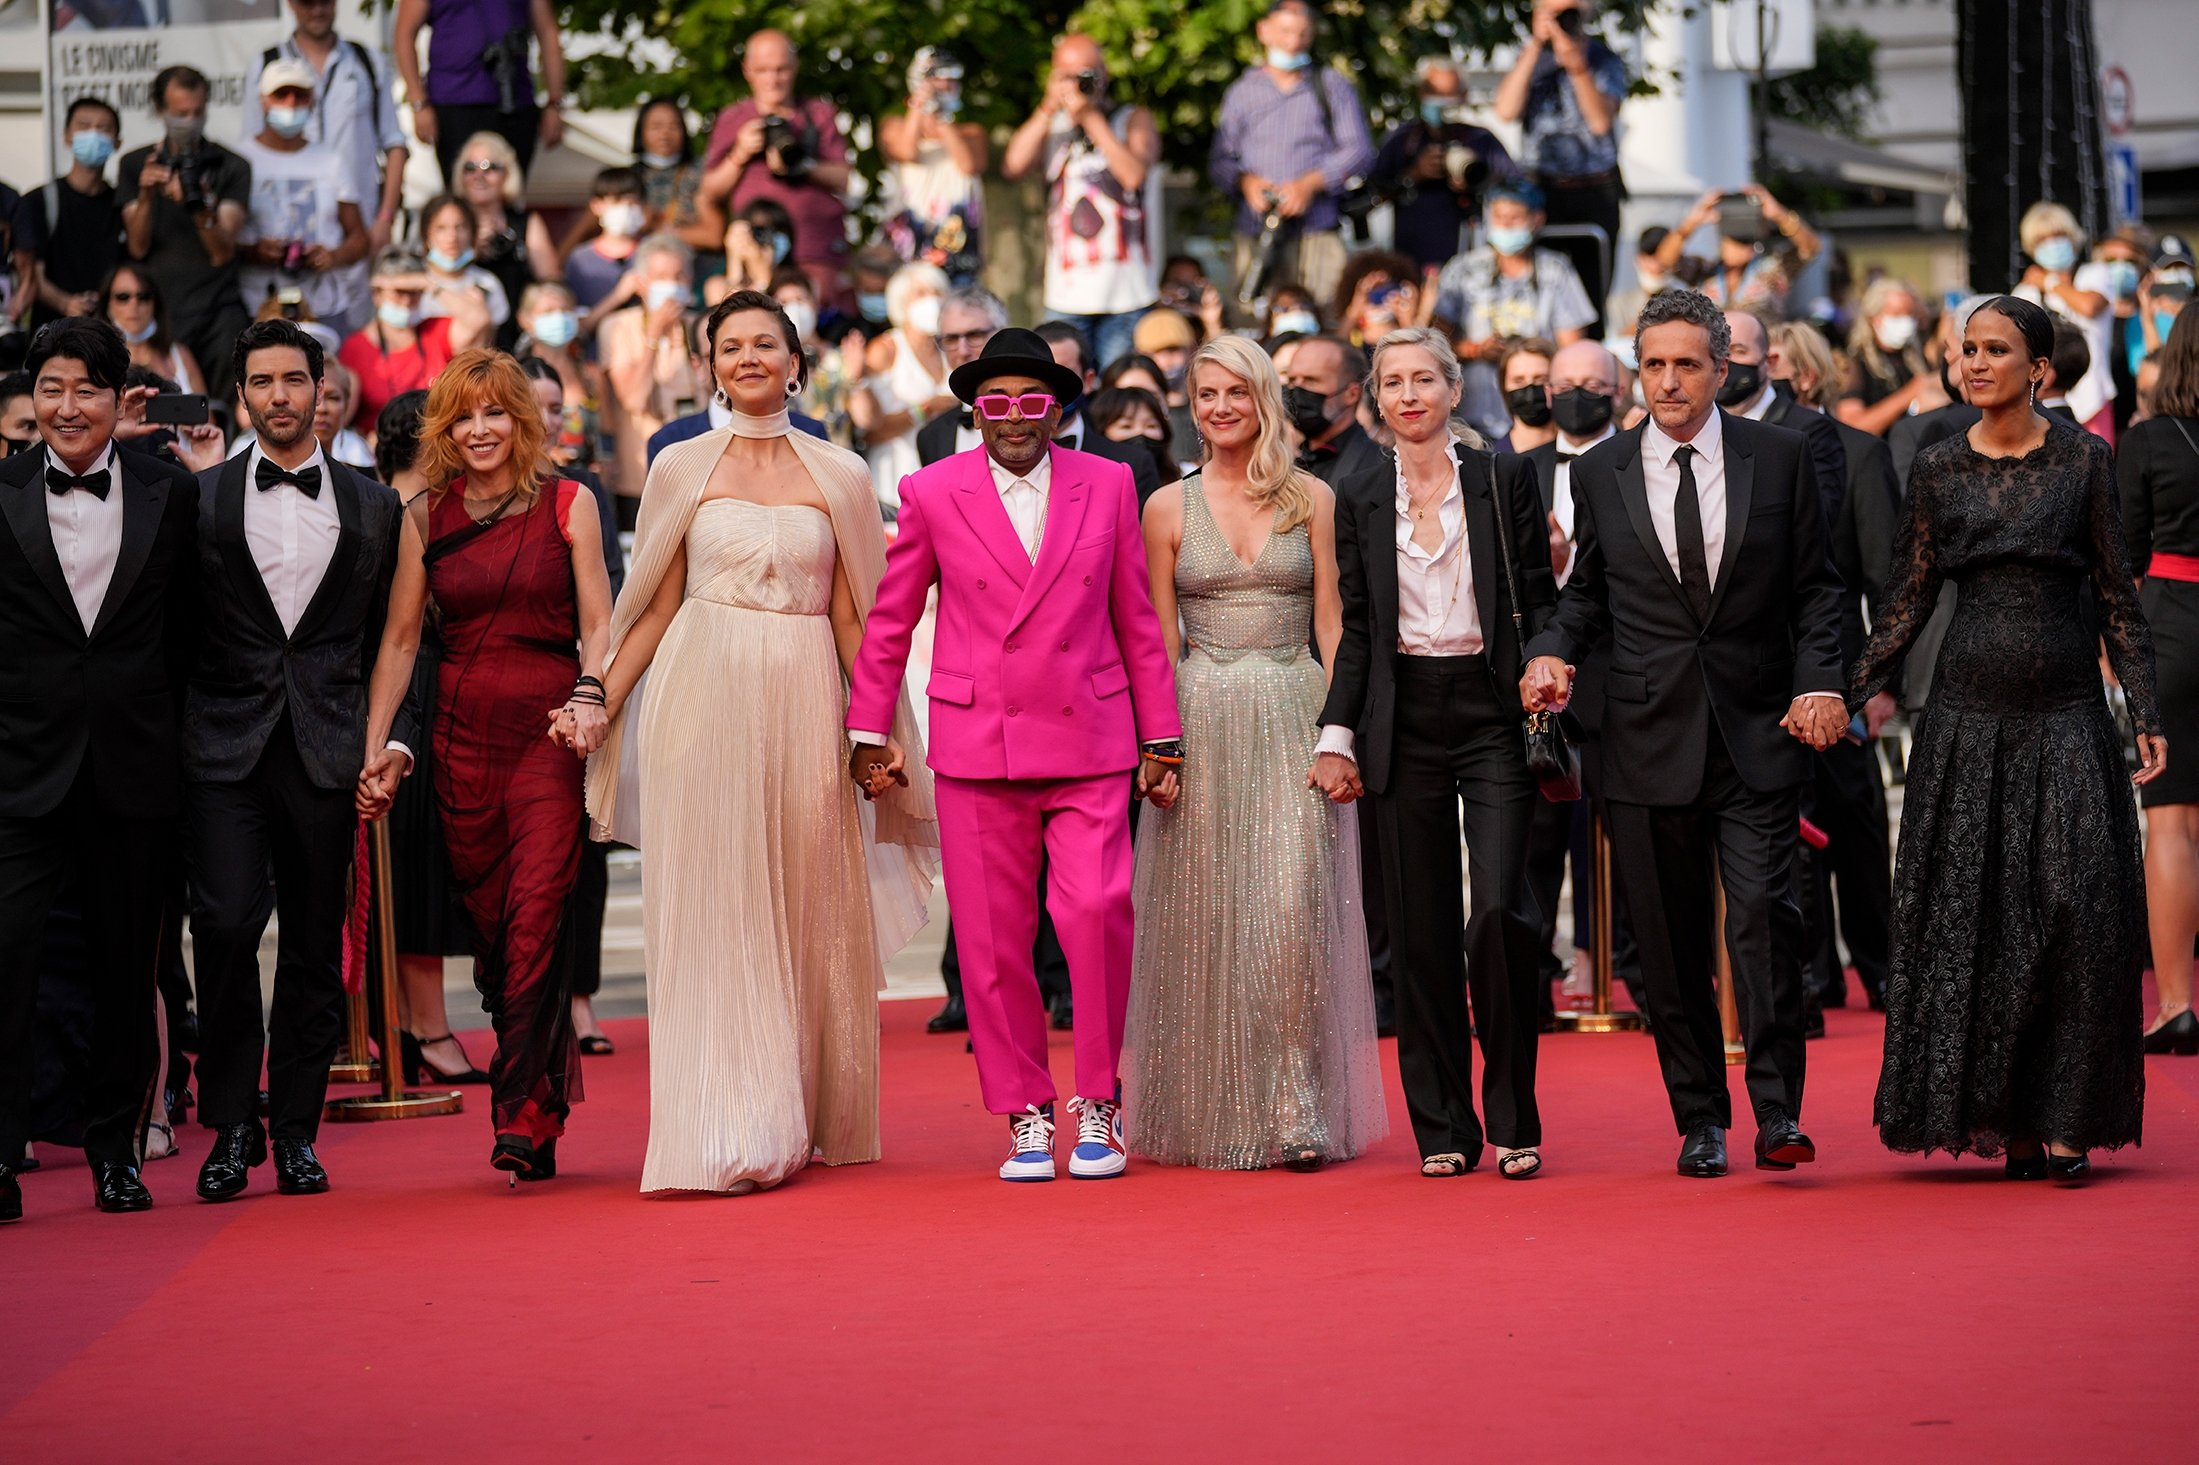 From left, jury members Kang-Ho Song, Tahar Rahim, Mylene Farmer, Maggie Gyllenhaal, Spike Lee, Melanie Laurent, Jessica Hausner, Kleber Mendonca Filho and Mati Diop pose for photographers upon arrival at the opening ceremony of the 74th international film festival, Cannes, southern France, July 6, 2021. (AP Photo)